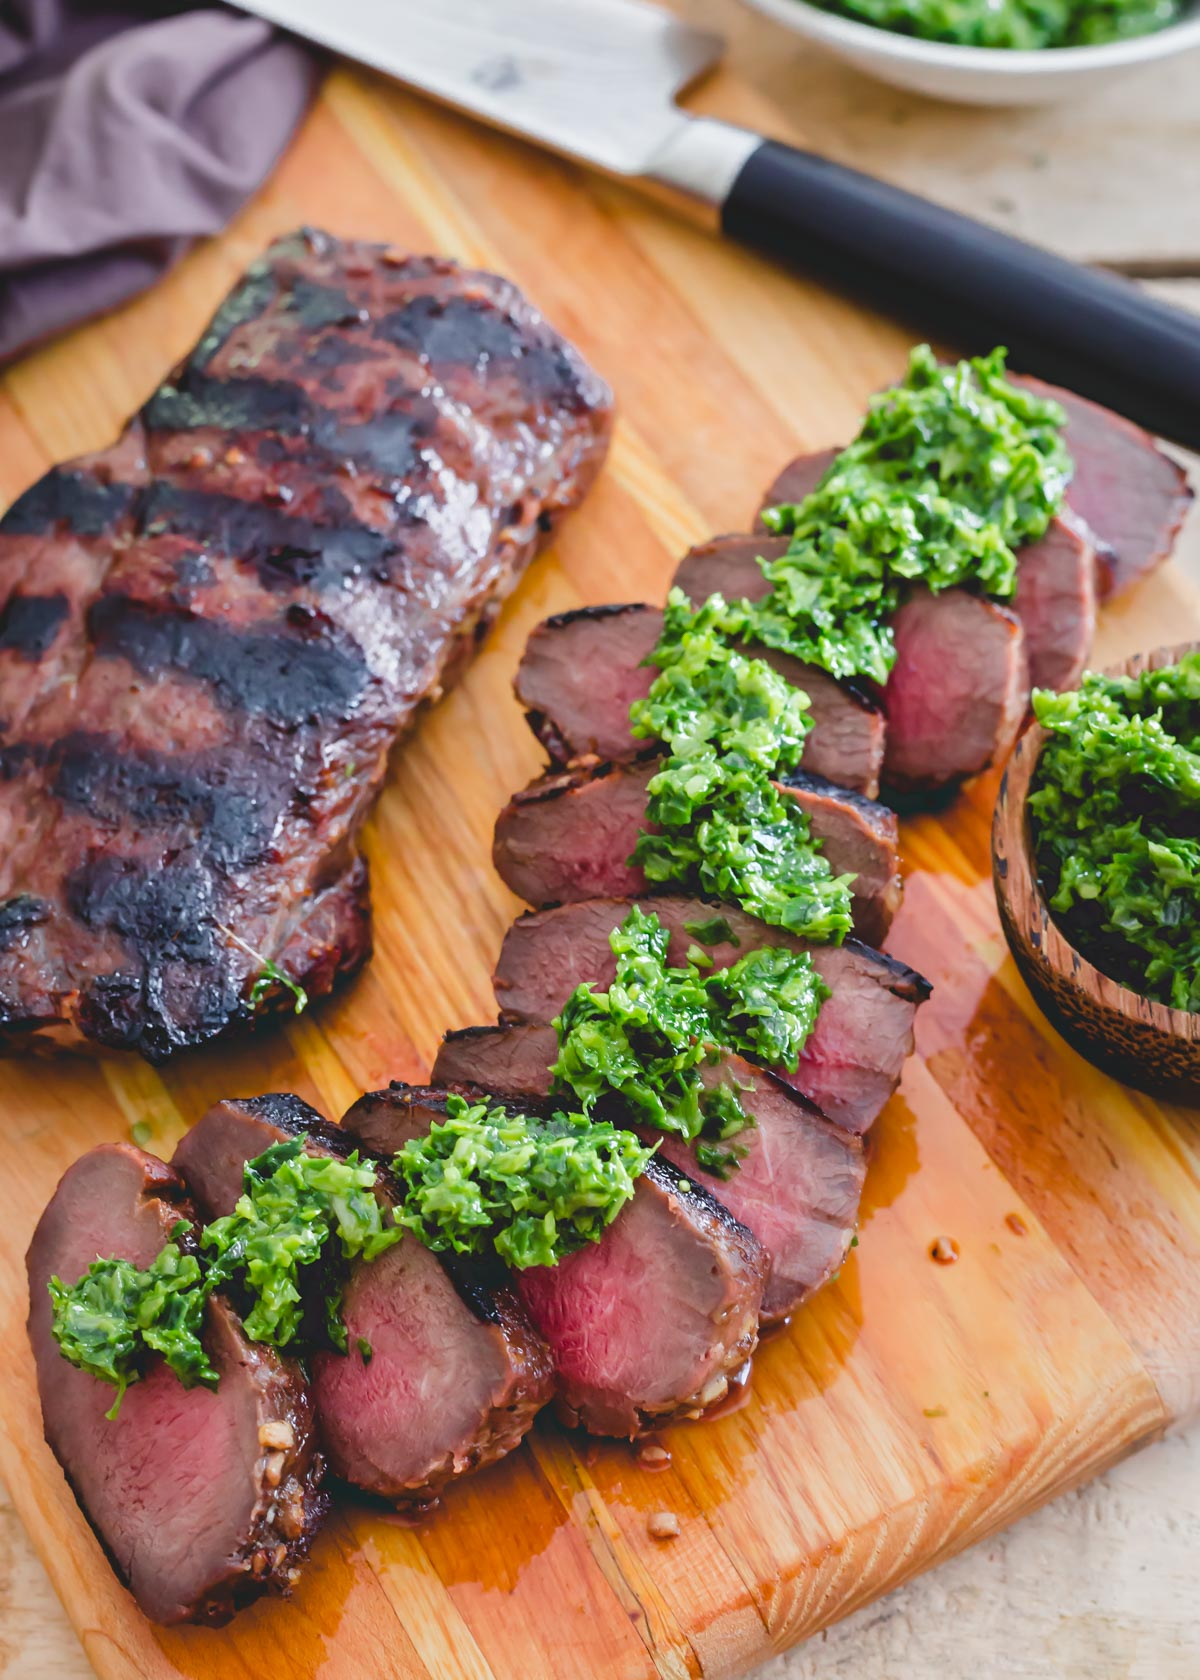 Easy recipe for deer backstrap marinated, grilled and sliced on a cutting board with pesto.